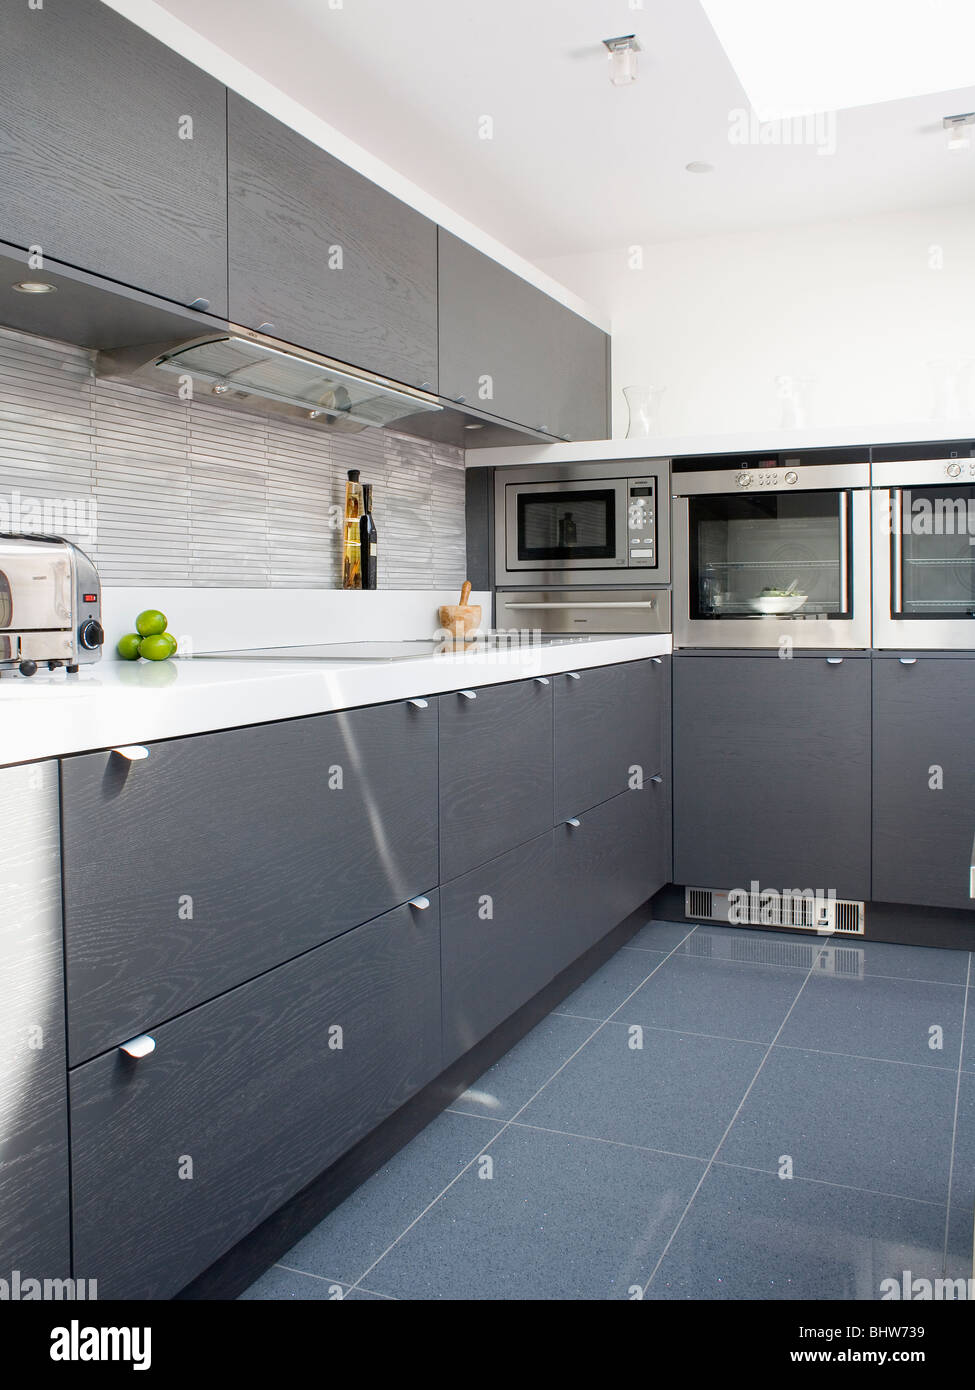 grey ceramic floor tiles in modern white kitchen with dark gray